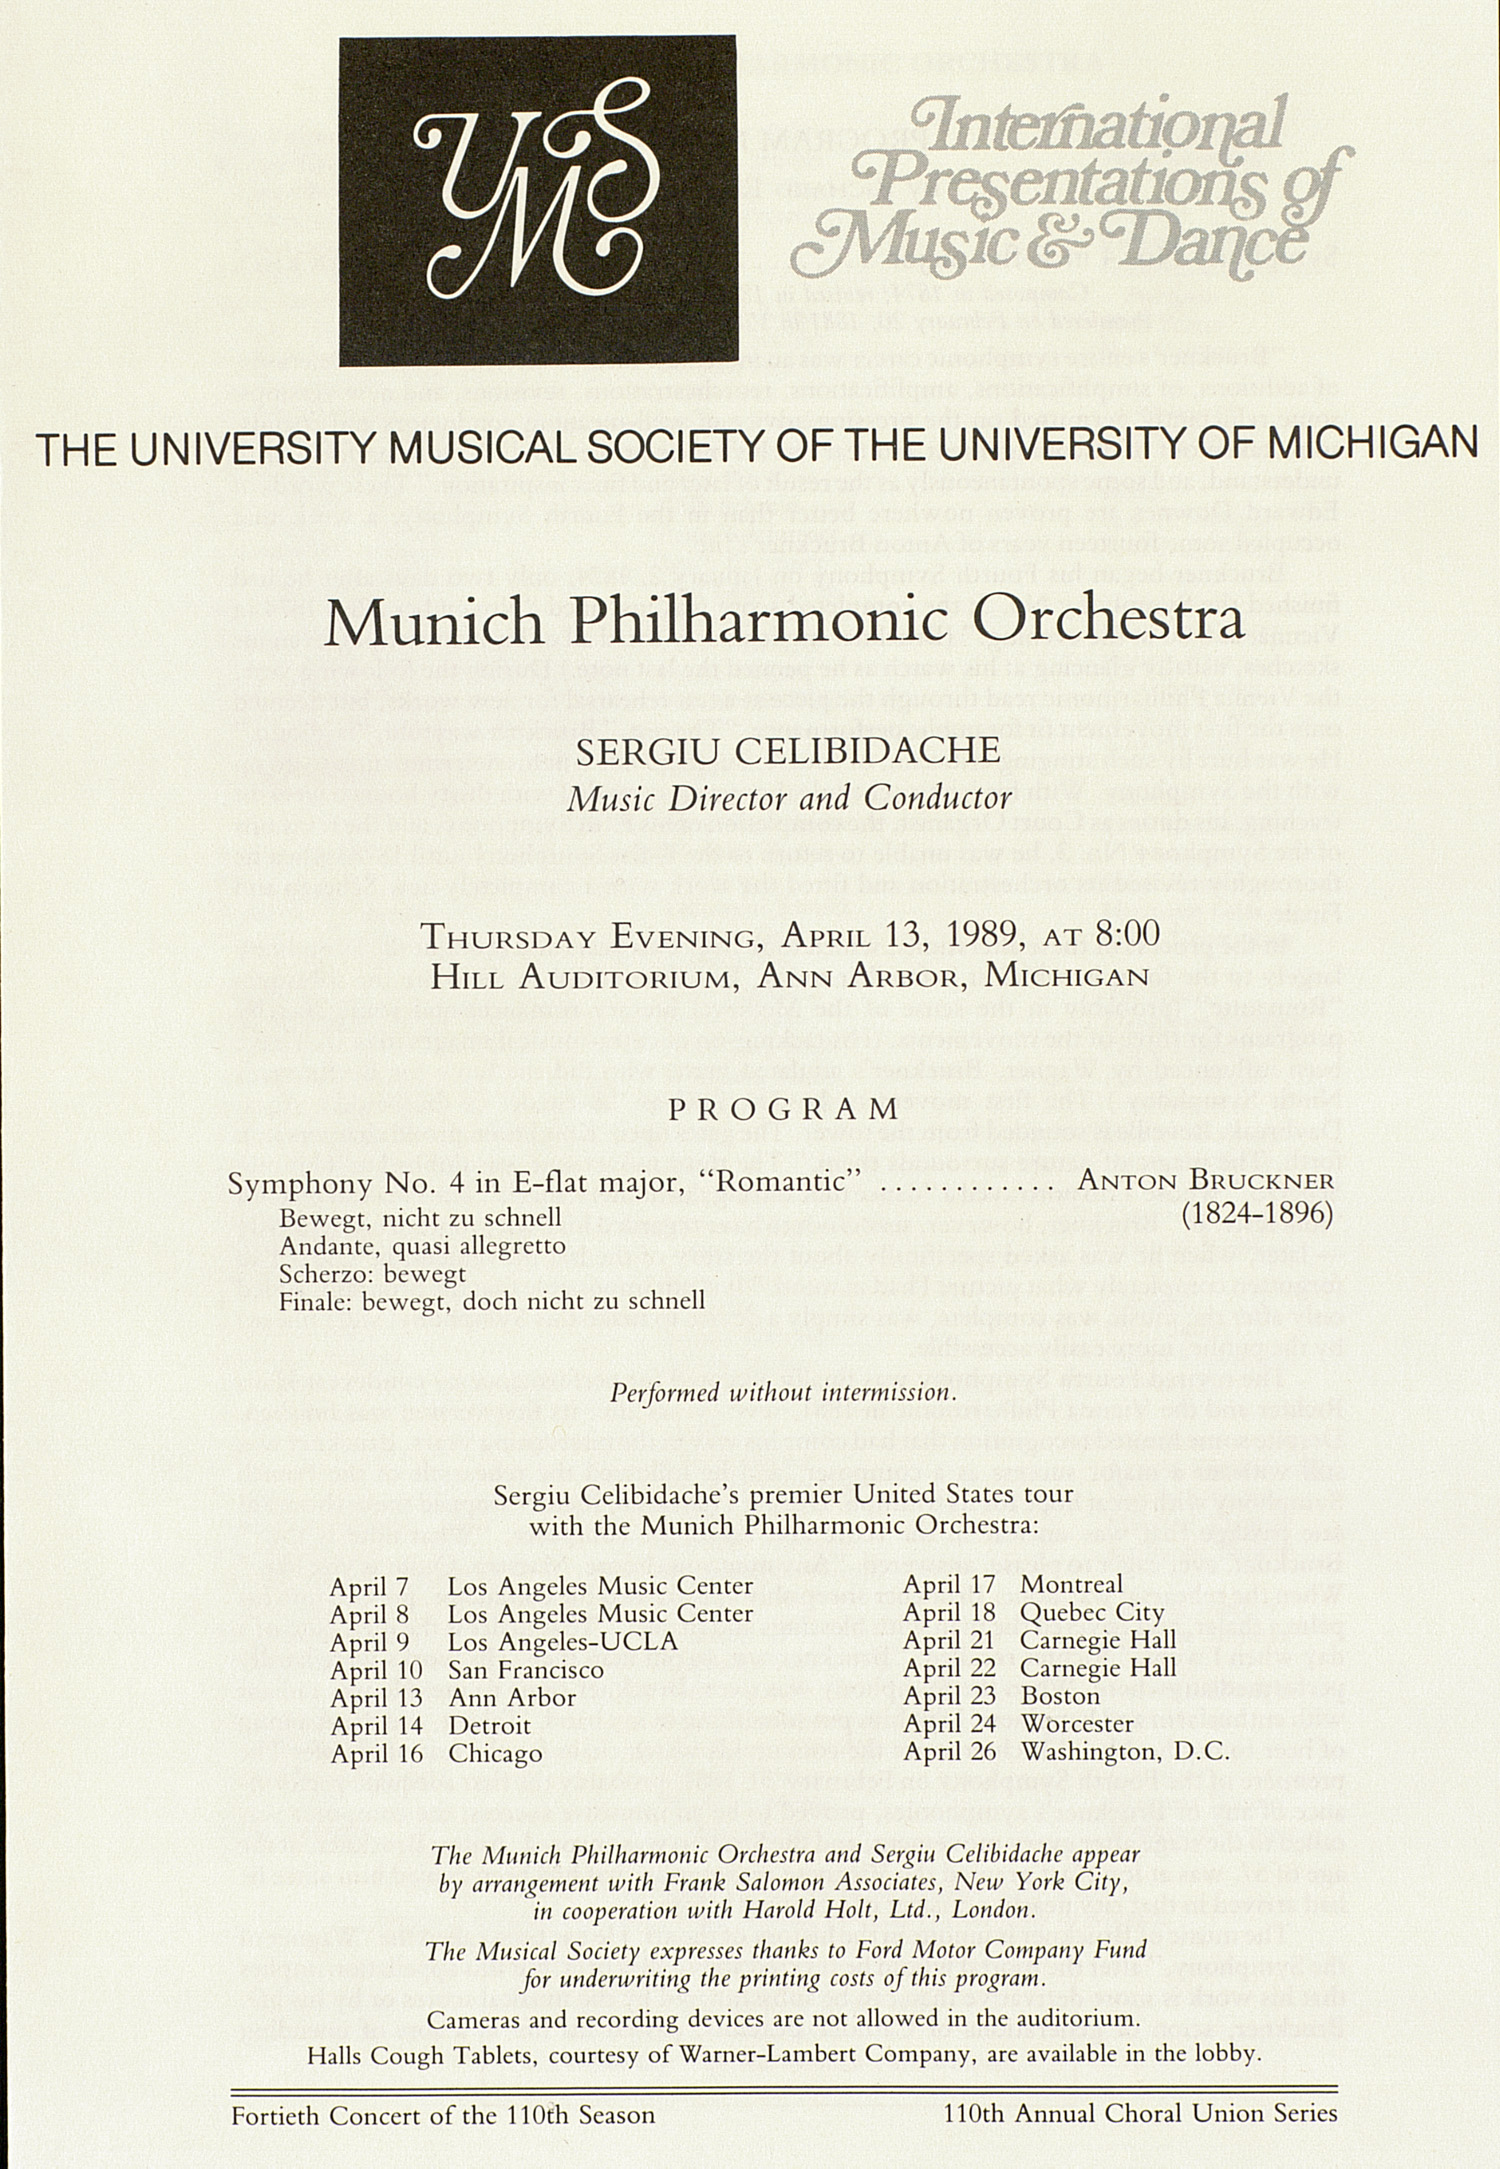 UMS Concert Program, April 13, 1989: International Presentations Of Music & Dance -- Munich Philharmonic Orchestra image